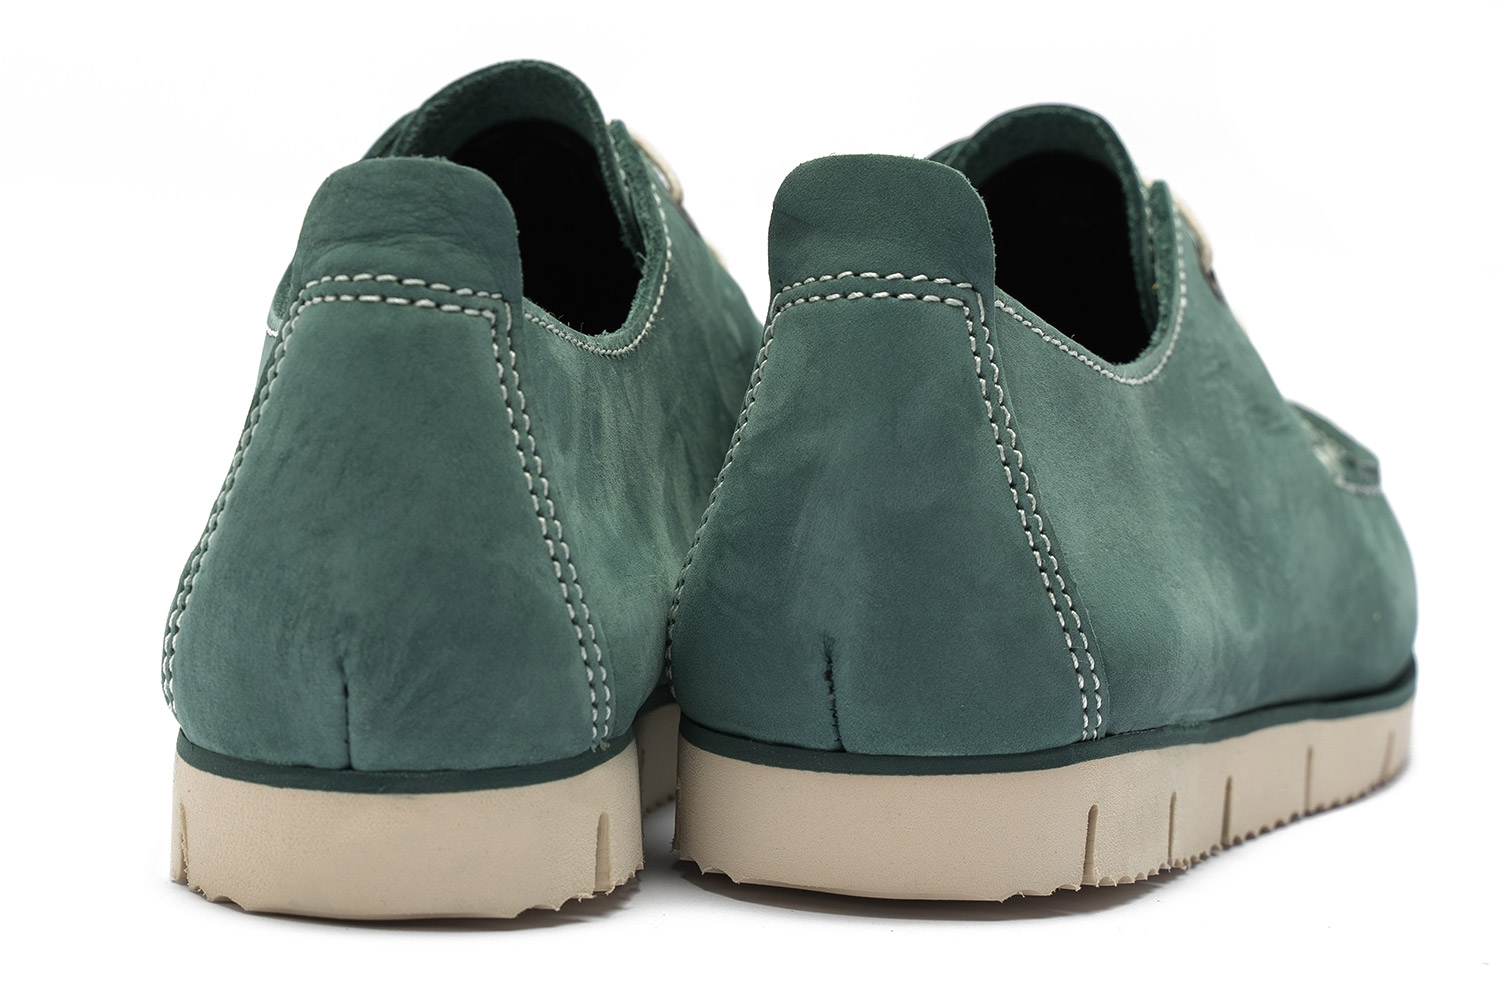 Green Nubuck leather Shoes 2